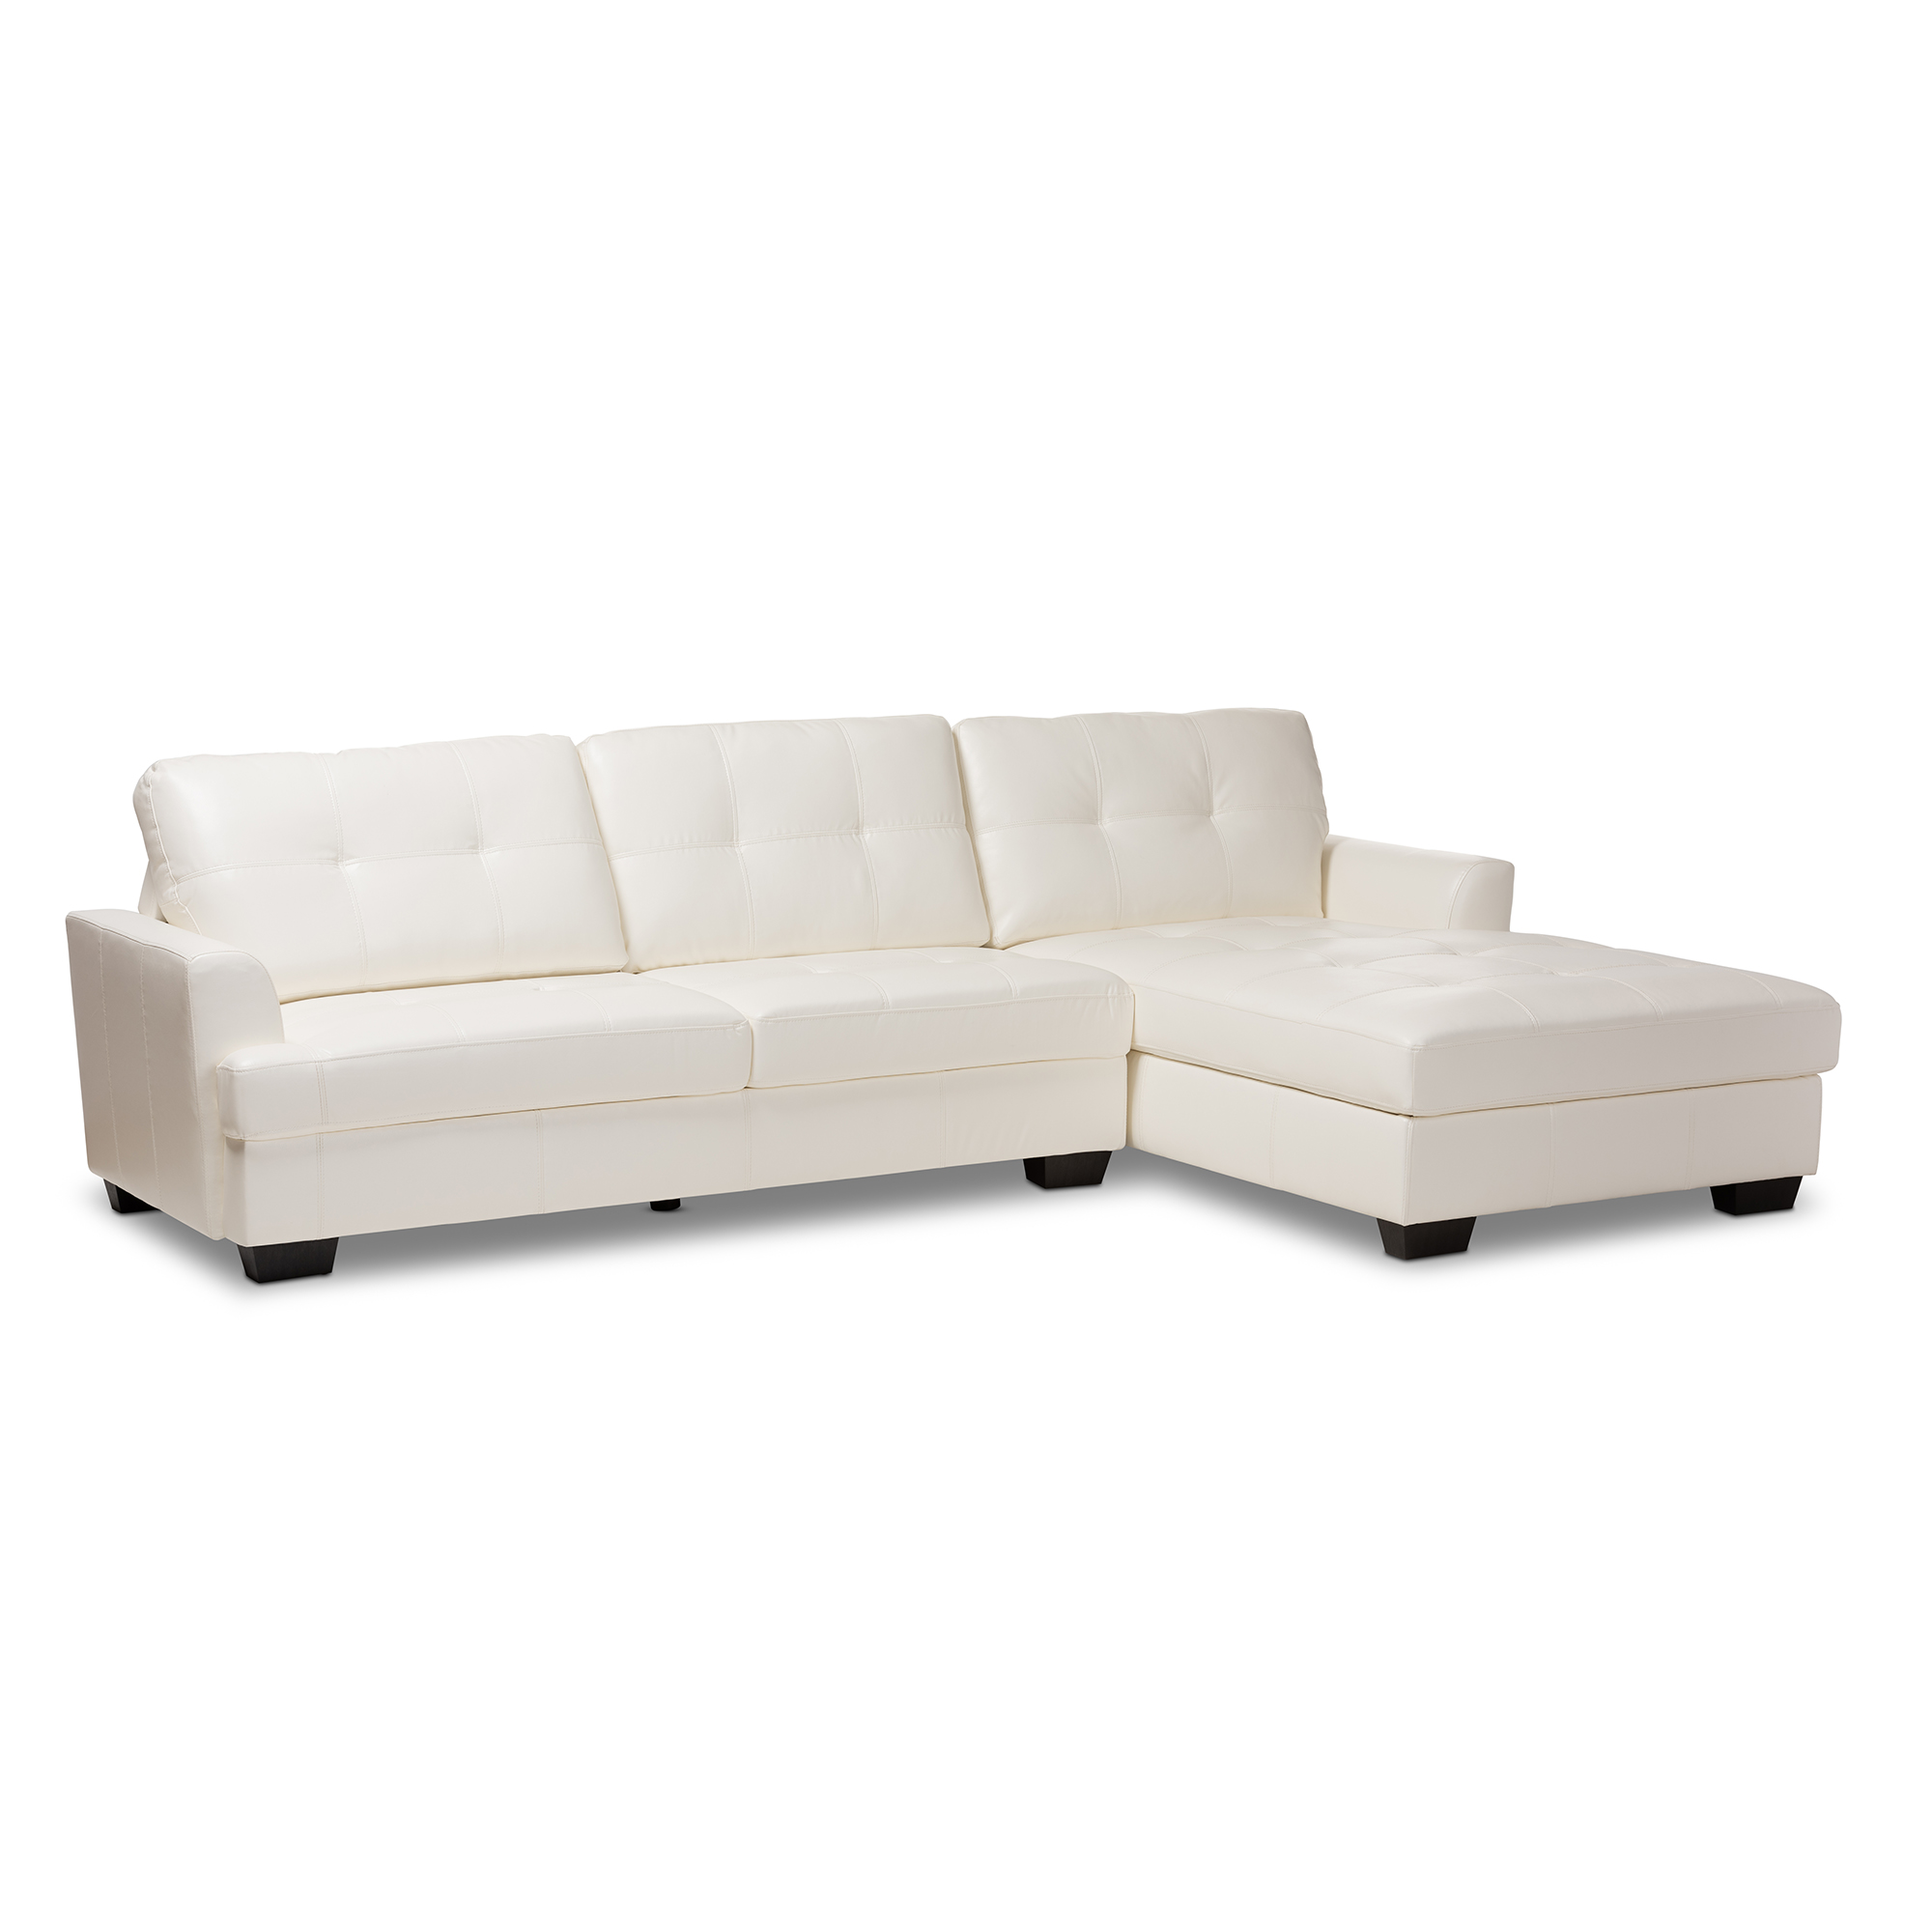 Baxton Studio Adalynn Modern And Contemporary White Faux